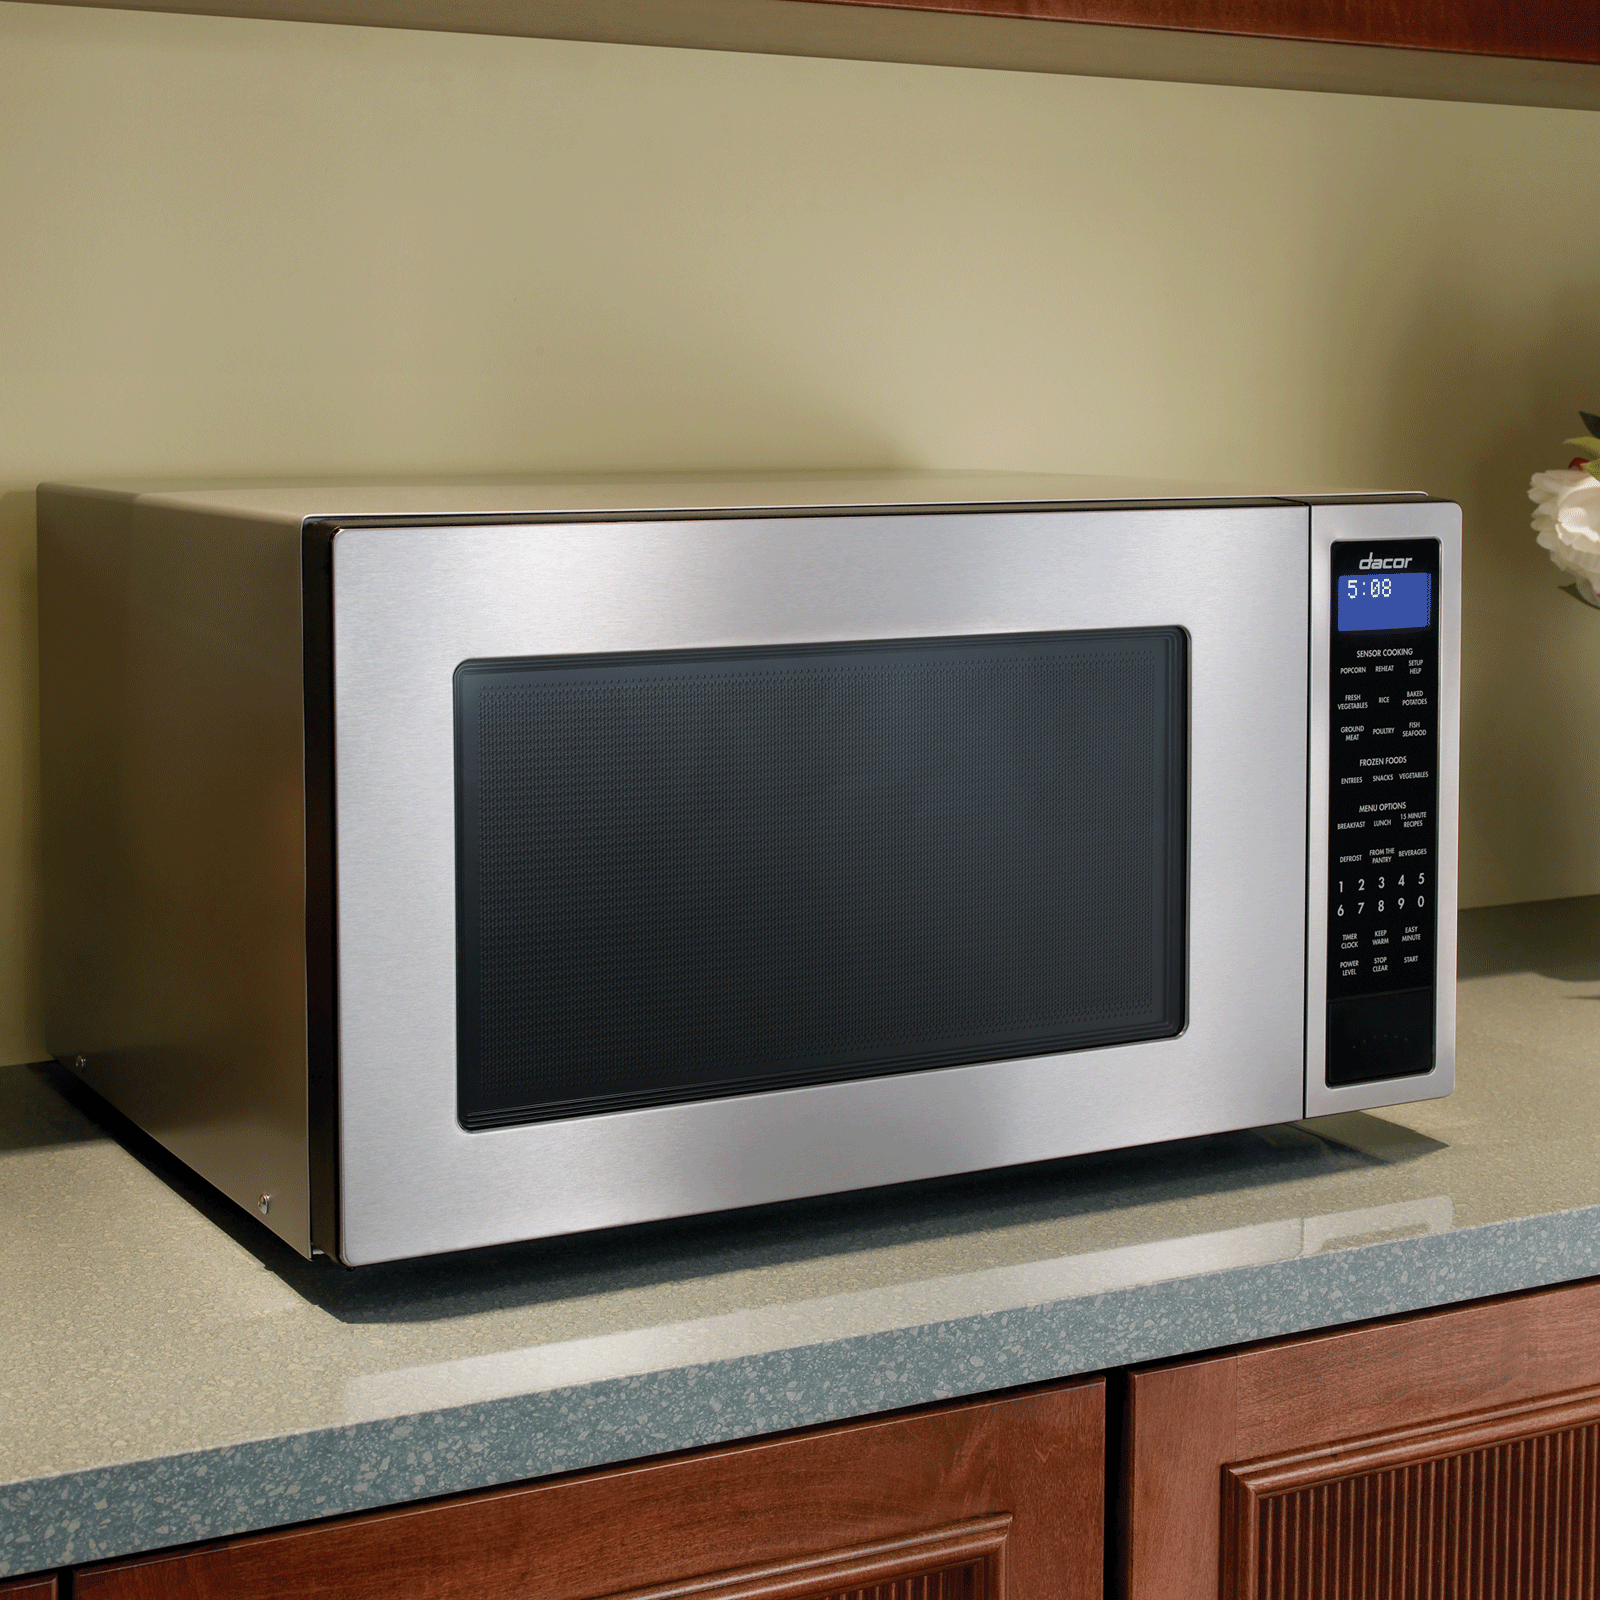 "Dacor Heritage 24"" Microwave Oven in Stainless Steel"